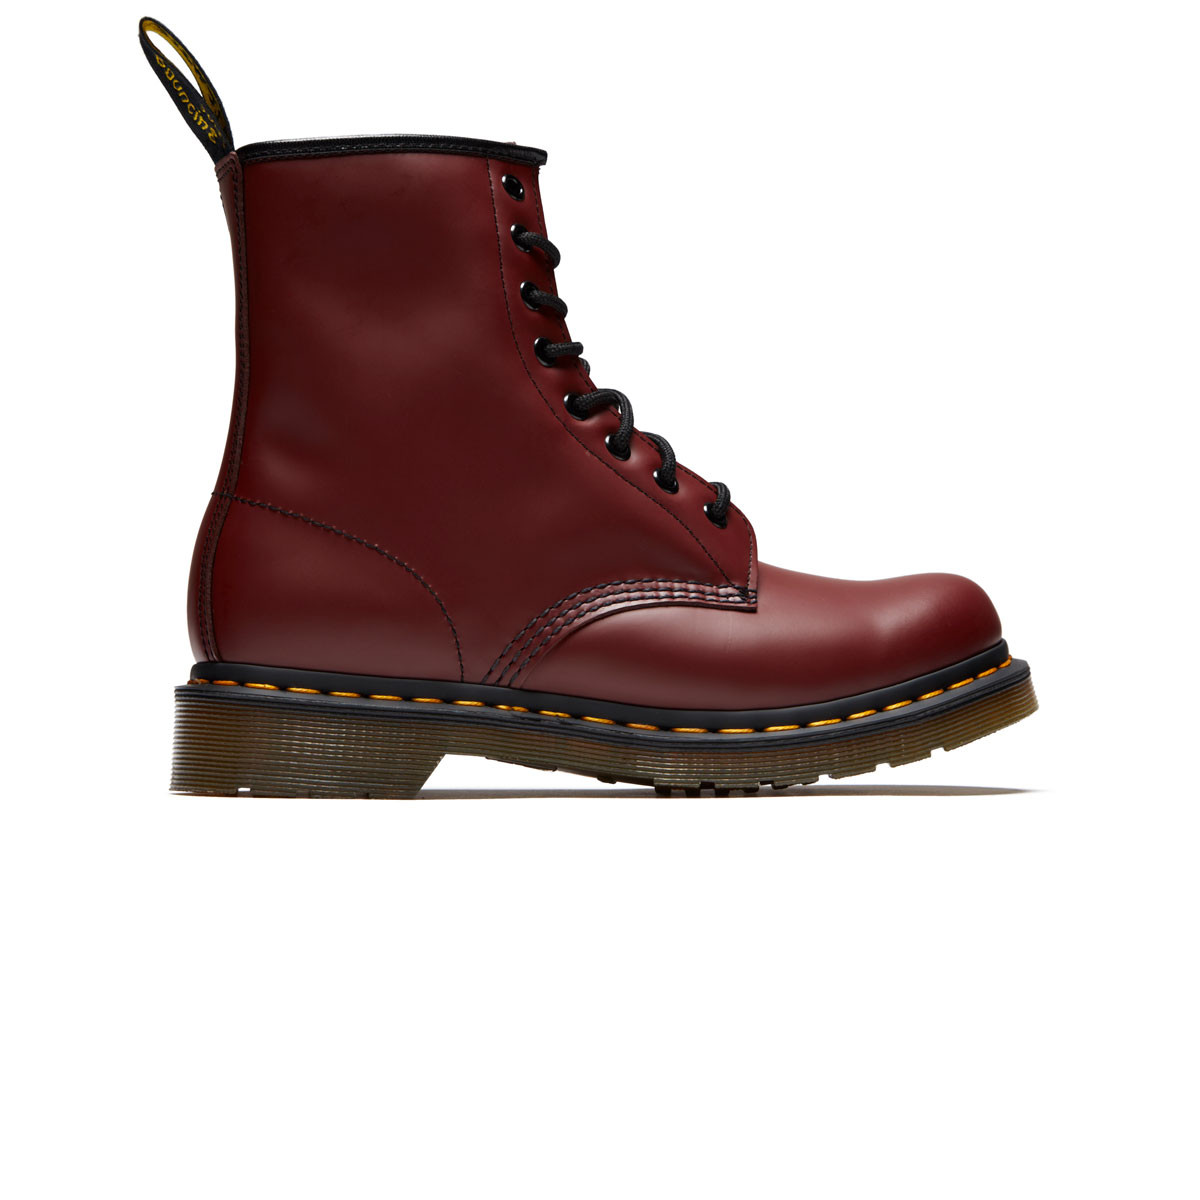 2db215d469bd Dr. Martens Womens 1460 8 Eye Smooth Leather Boots